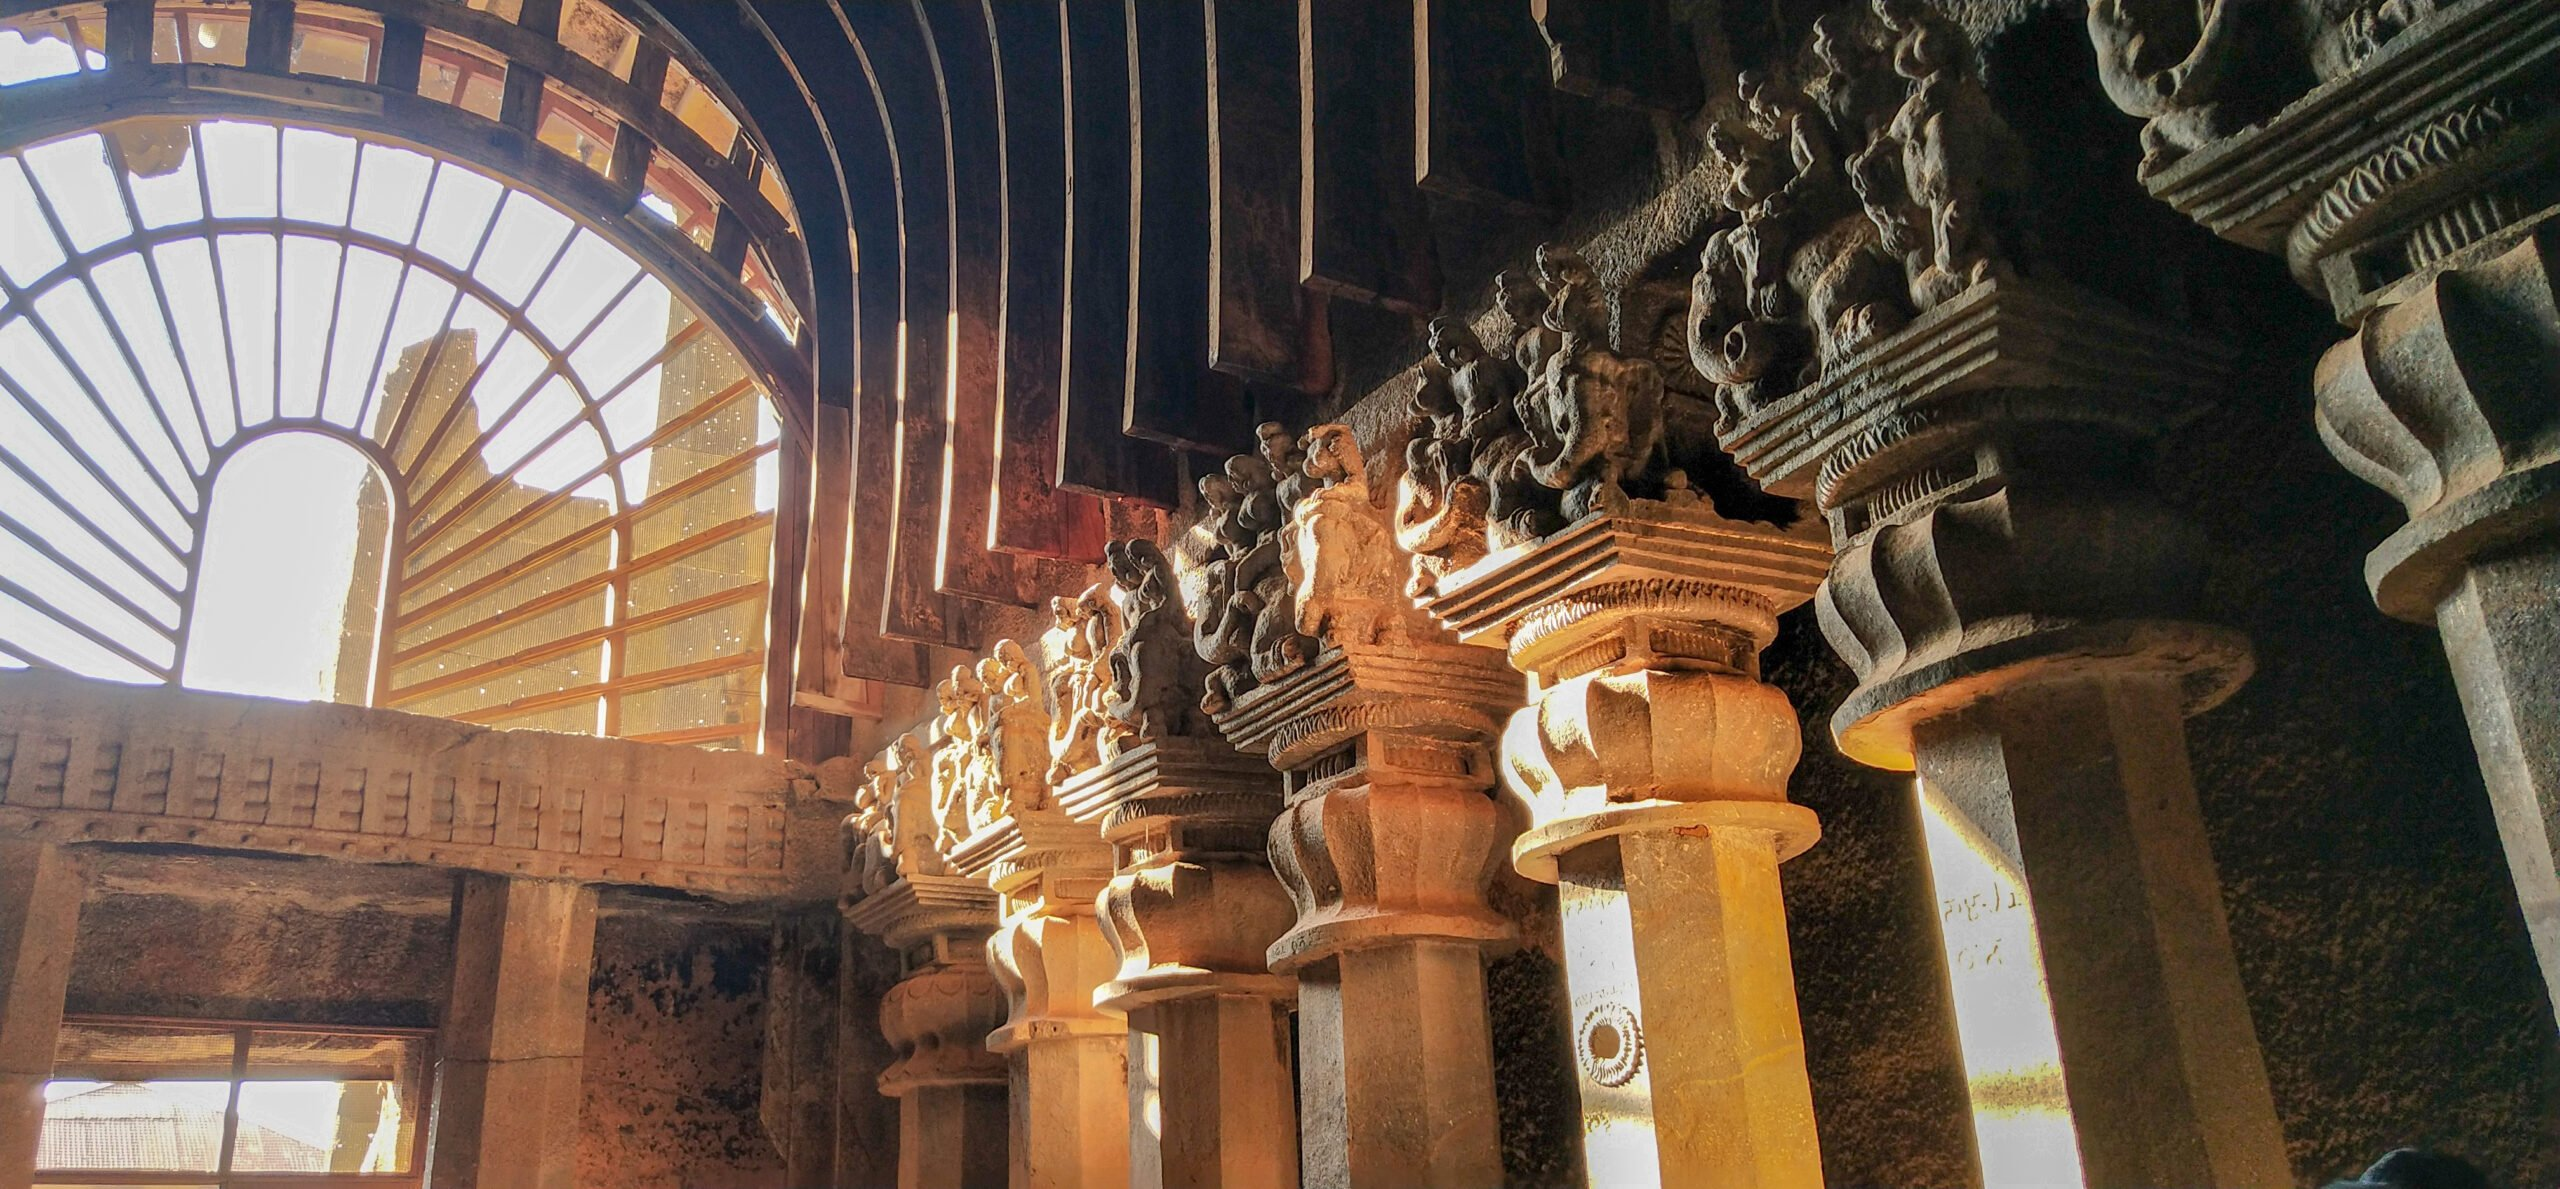 Go Back 2000 Years To Explore Rock Cut Buddhist Caves On An Ancient Trade Route In Our Karla & Bhaja Caves Tour